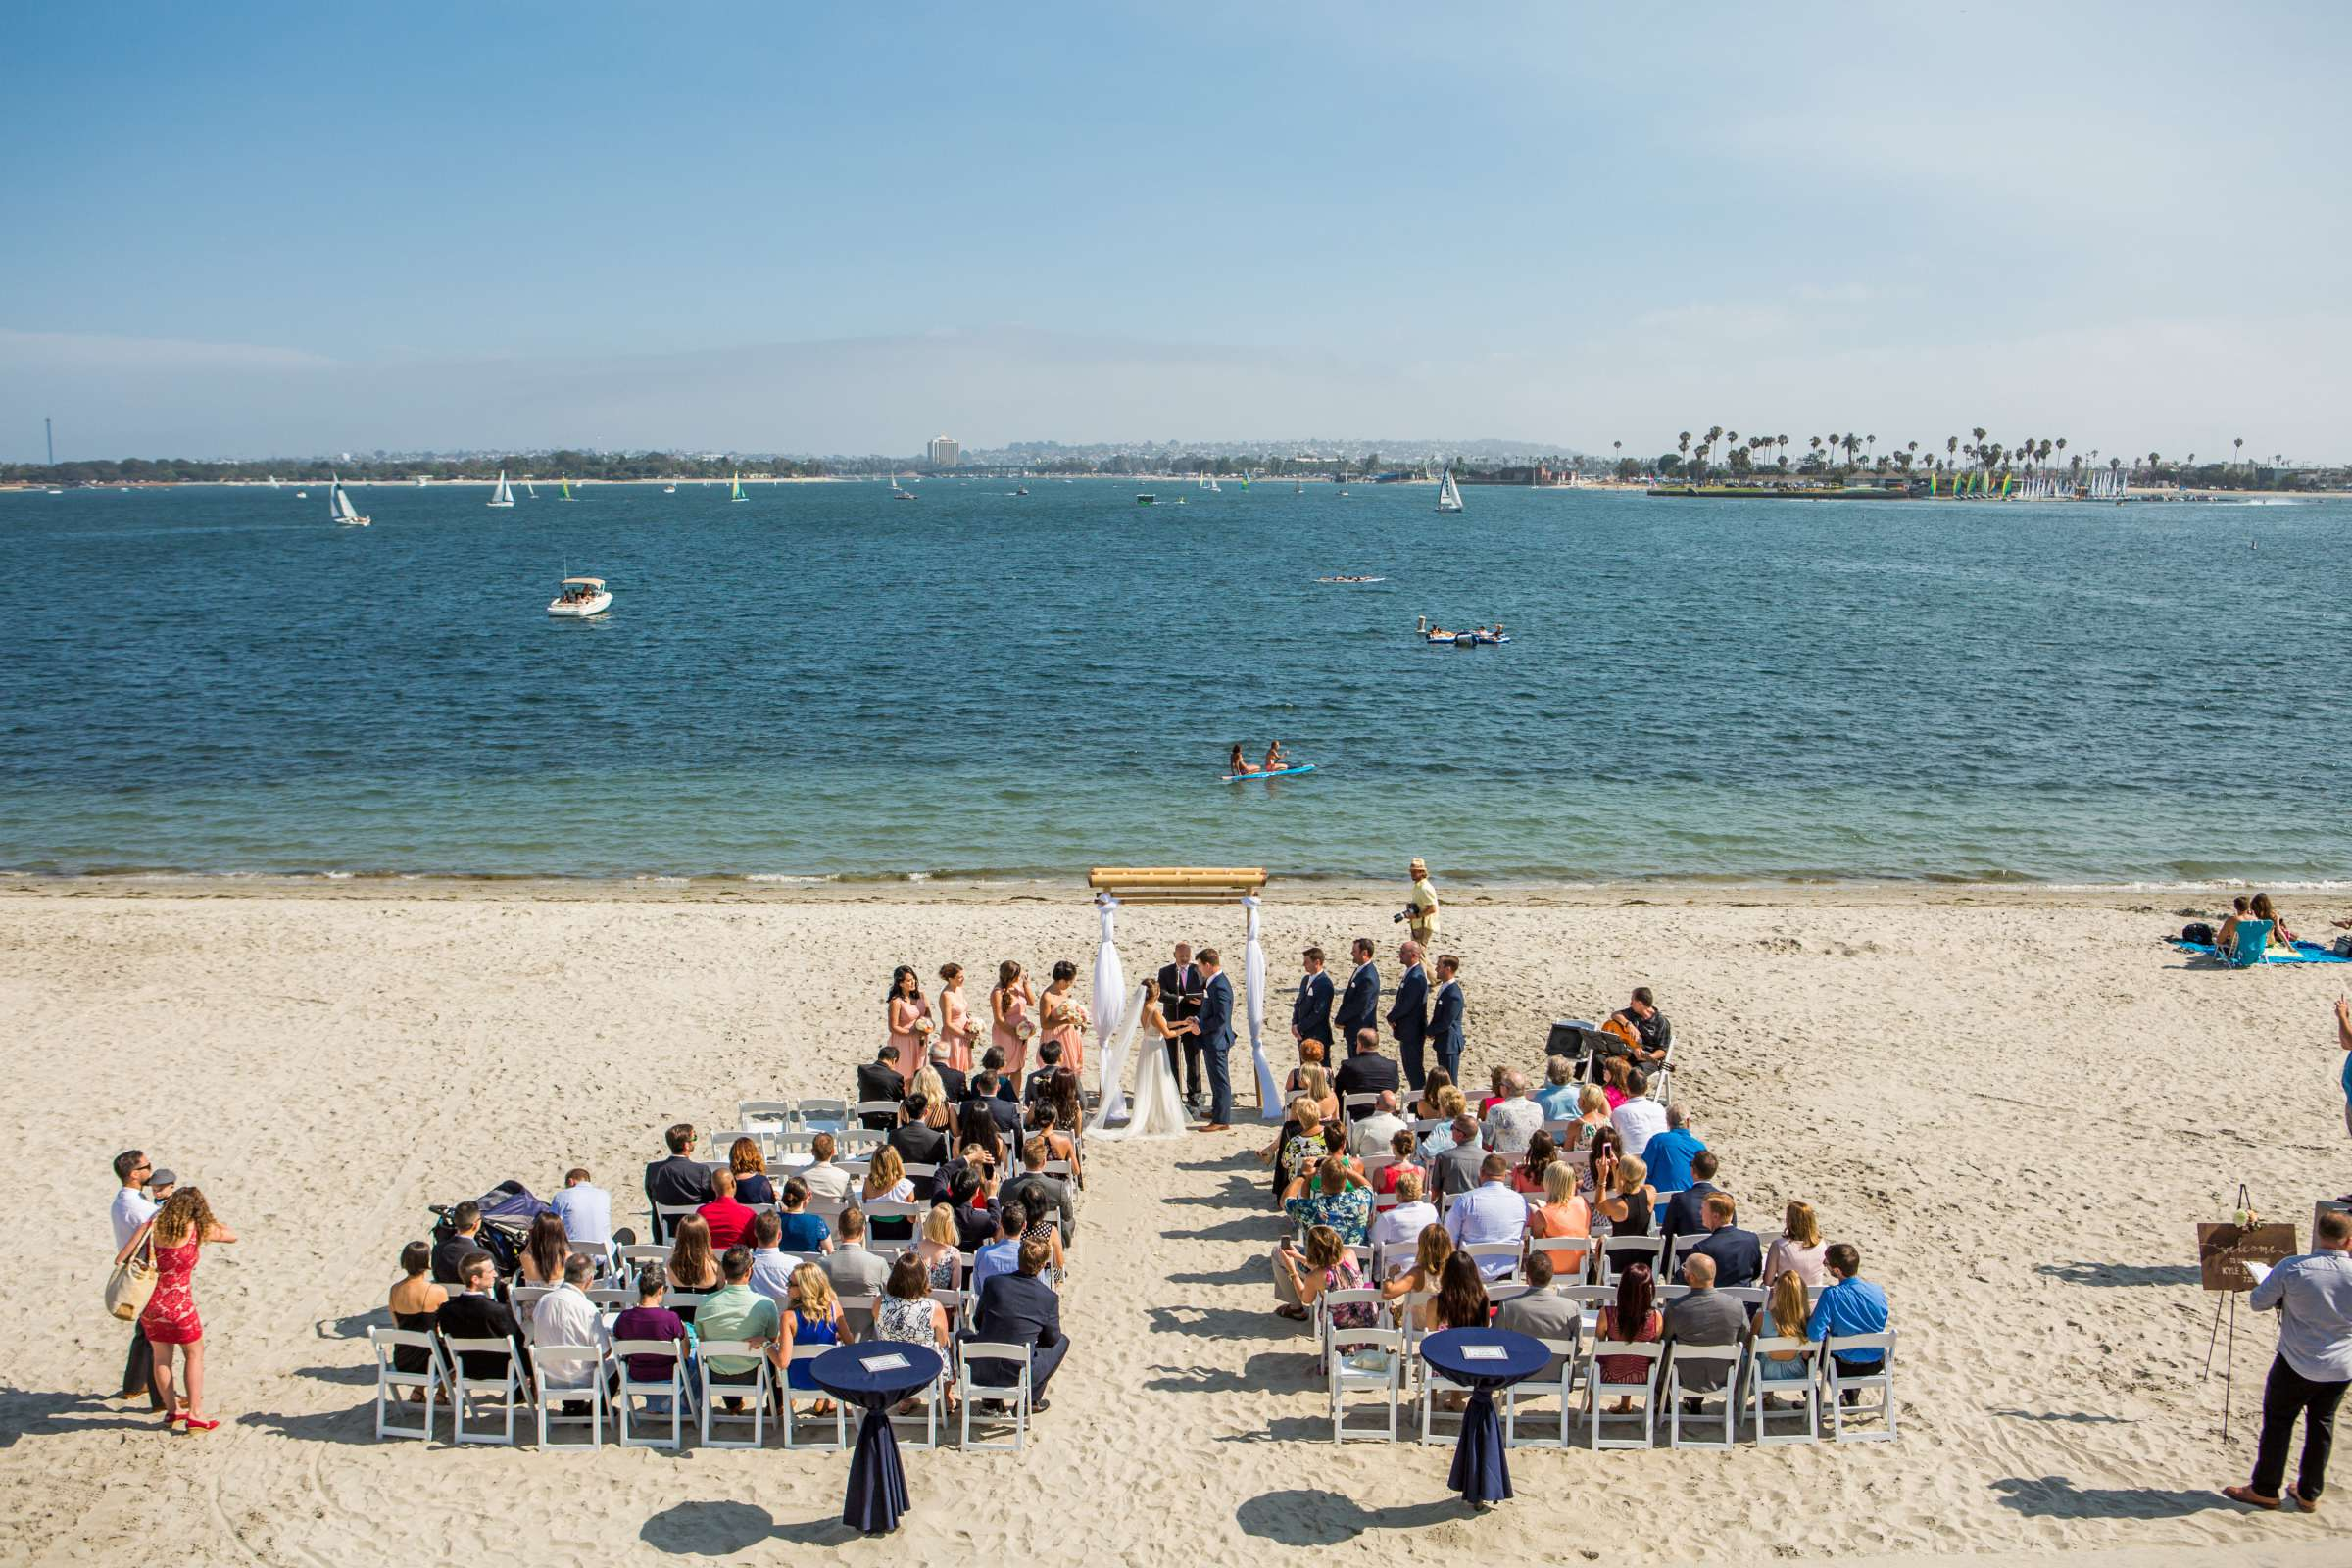 ZLAC Rowing Club Wedding coordinated by Weddings by Thomas Lewis, Melissa and Kyle Wedding Photo #9 by True Photography